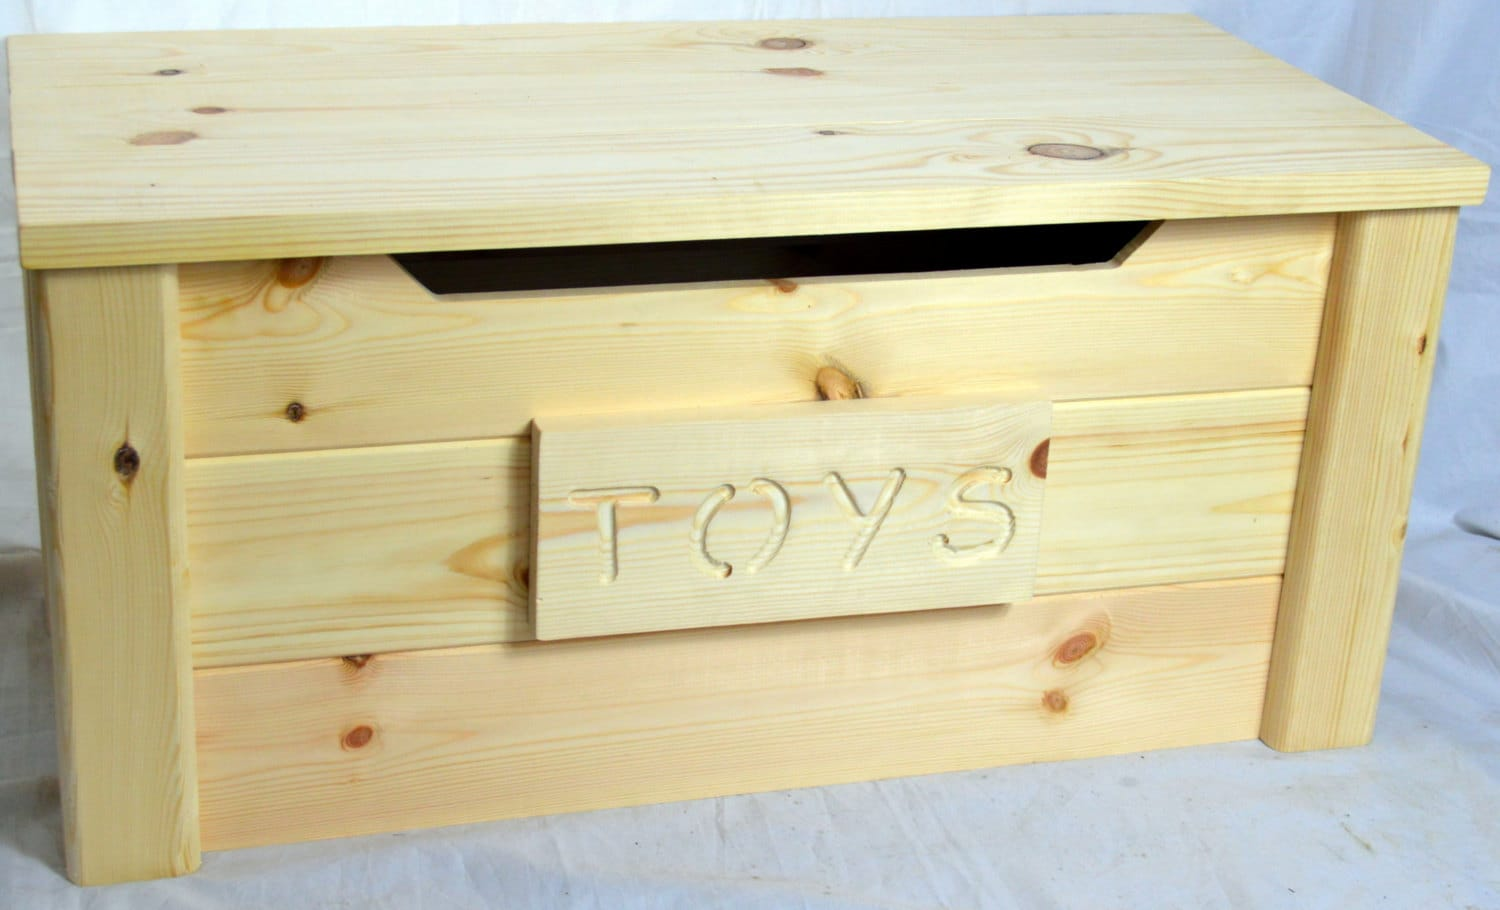 Handcrafted Wooden Rustic Pine Trunk Chest Toy Box Natural